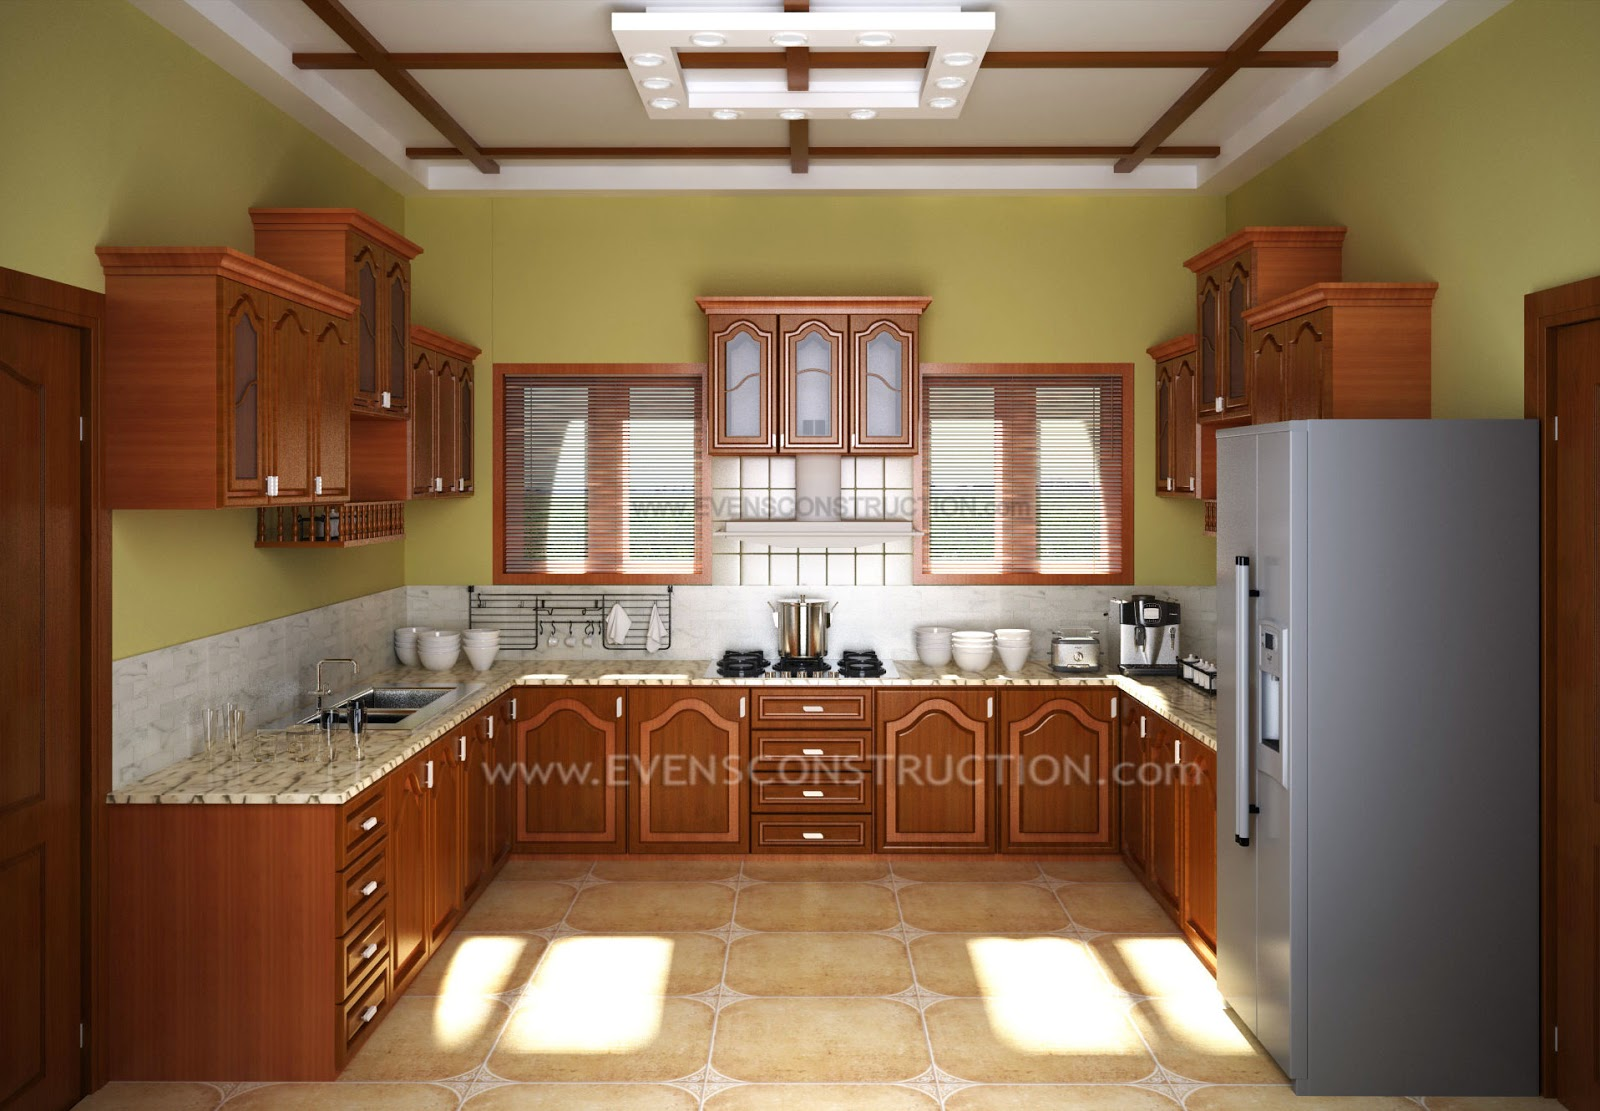 kitchen cabinet design kerala evens construction pvt ltd kerala kitchen with wooden 636